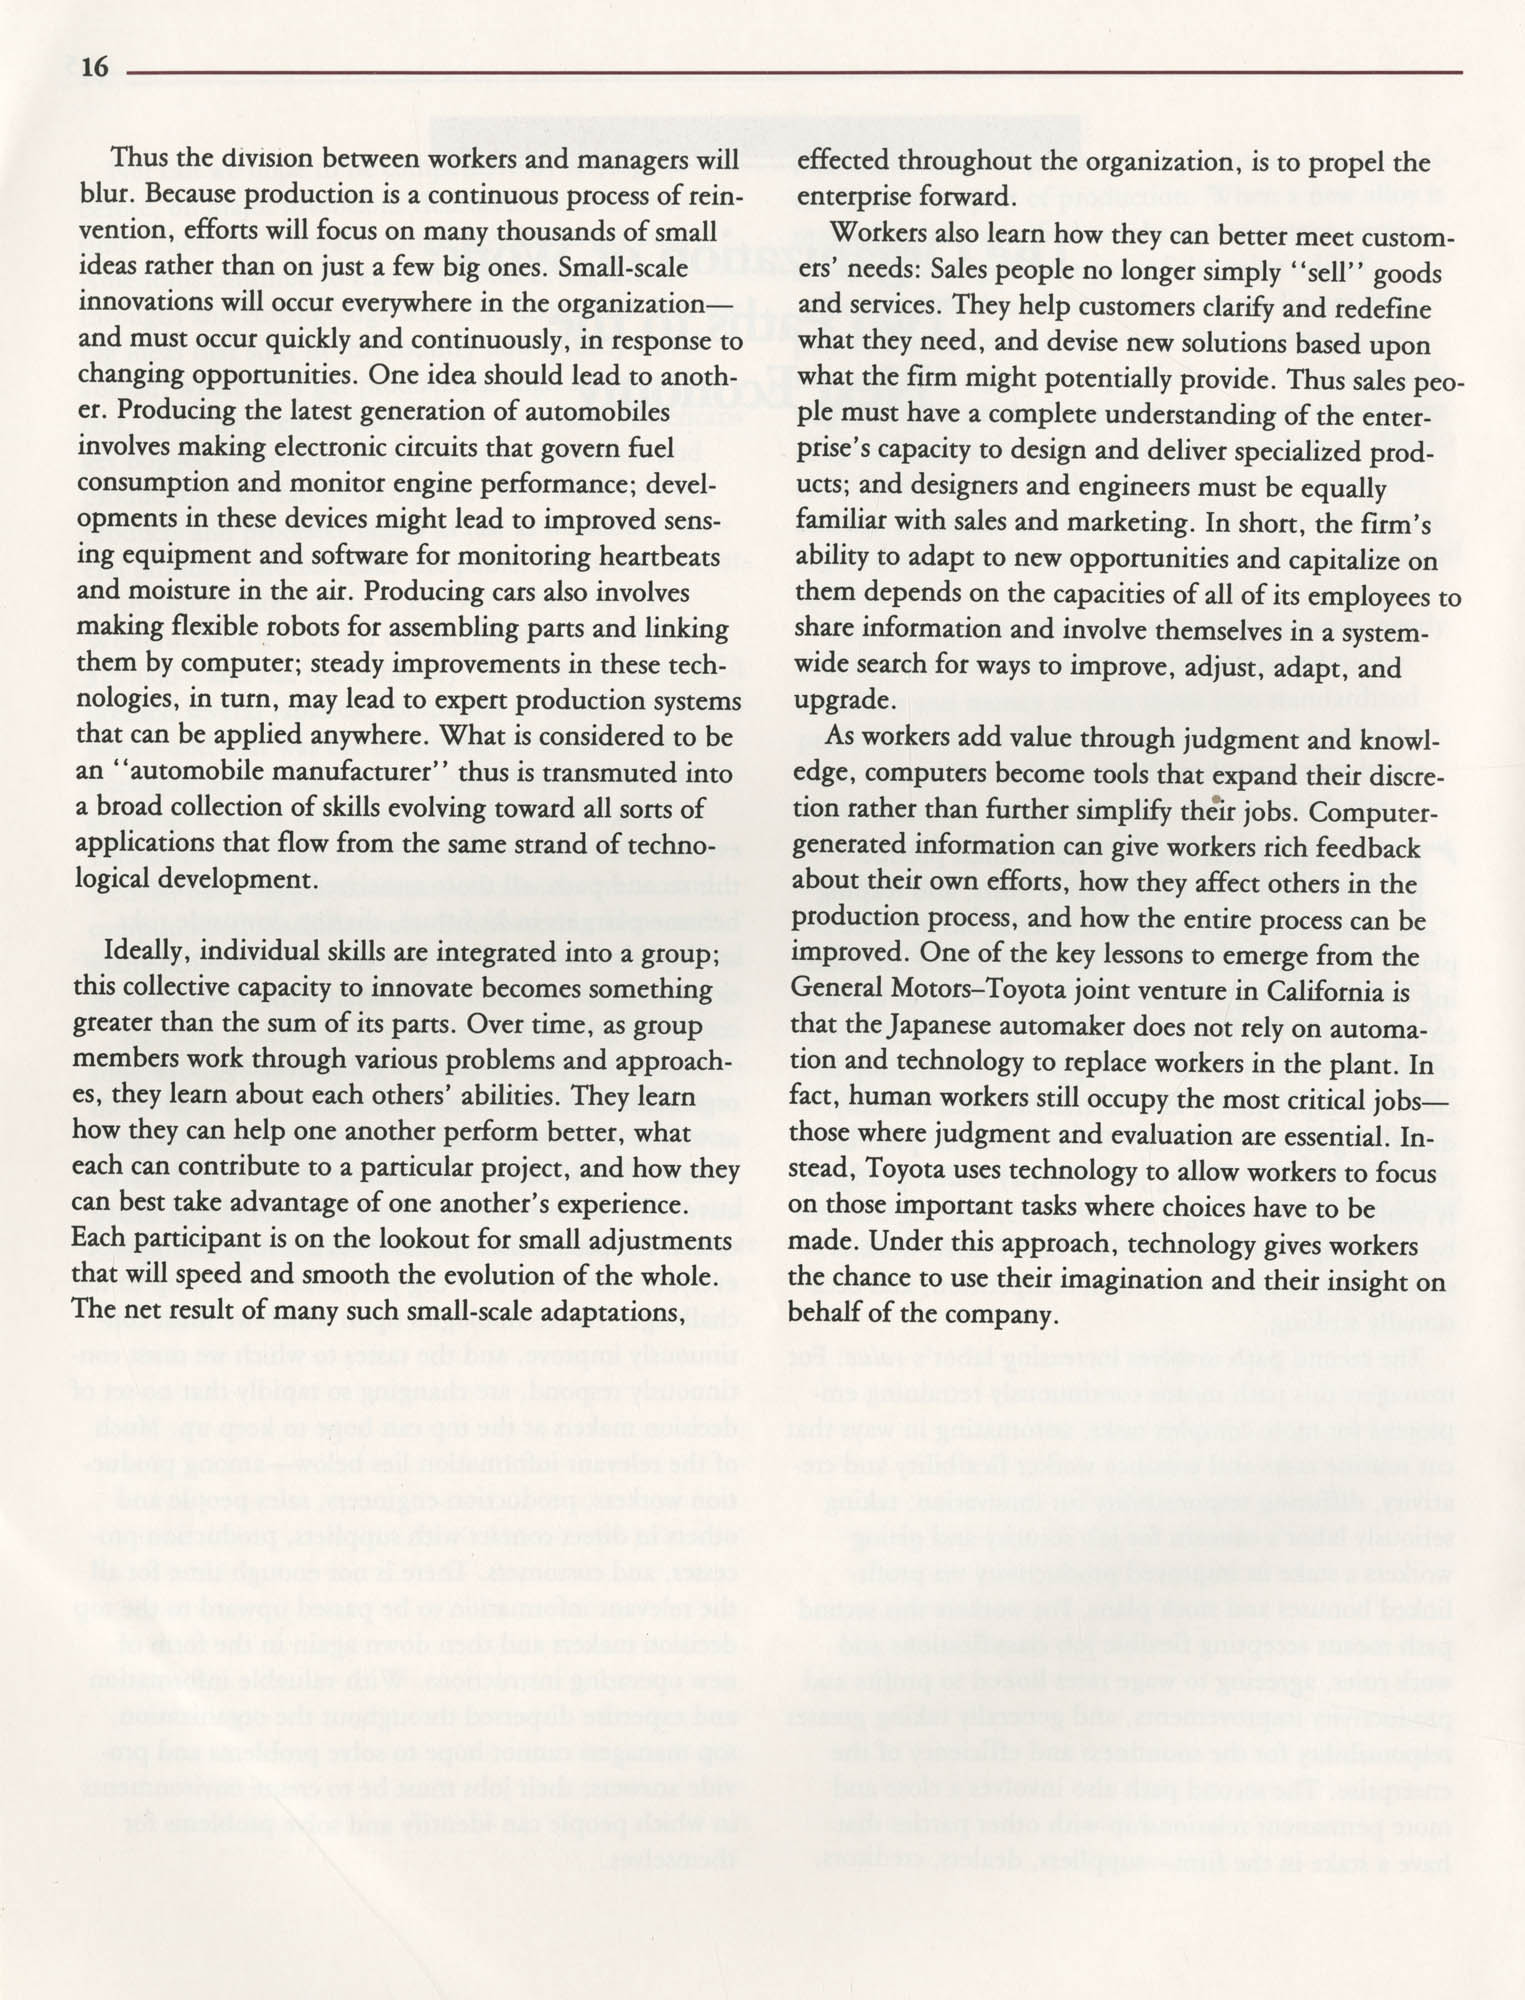 Education and the Next Economy, Page 16